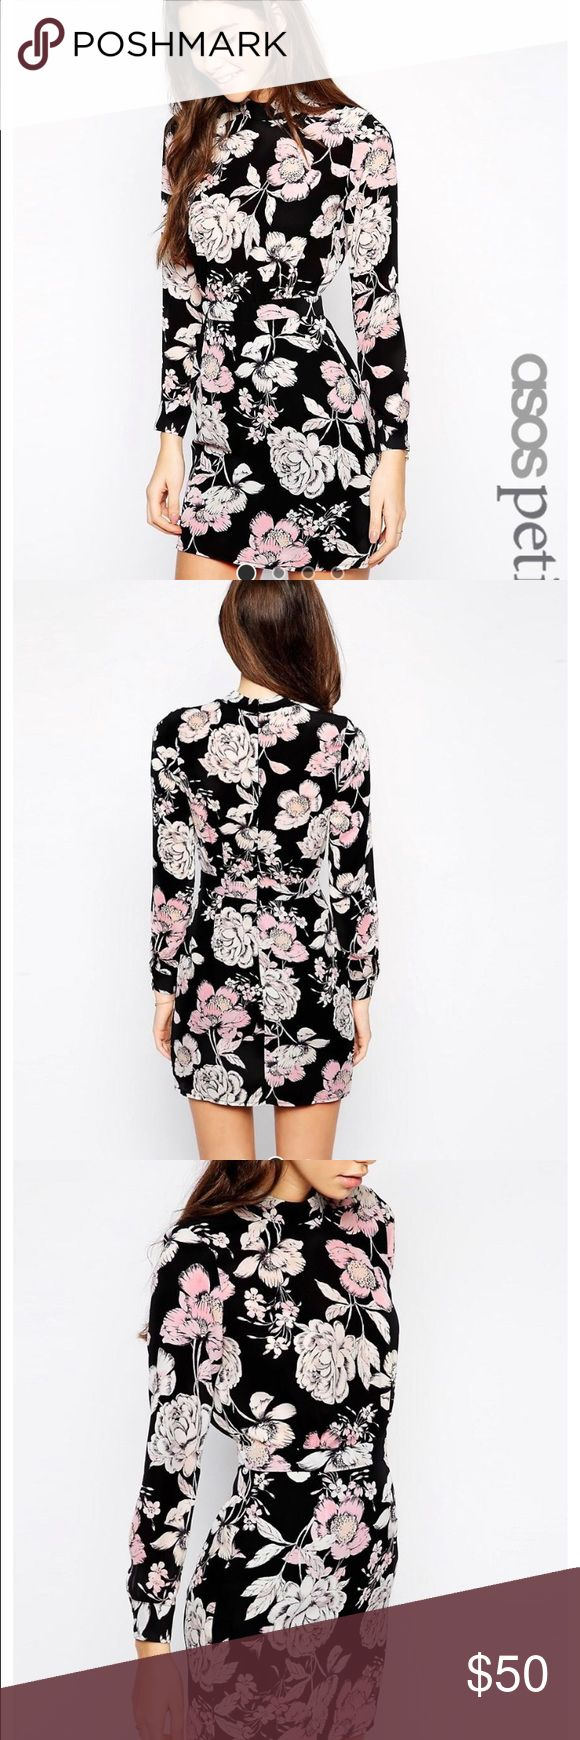 Petite Mini Dress with High Neck in Floral Brand New! Never worn, in great condition. ASOS Petite Dresses Mini